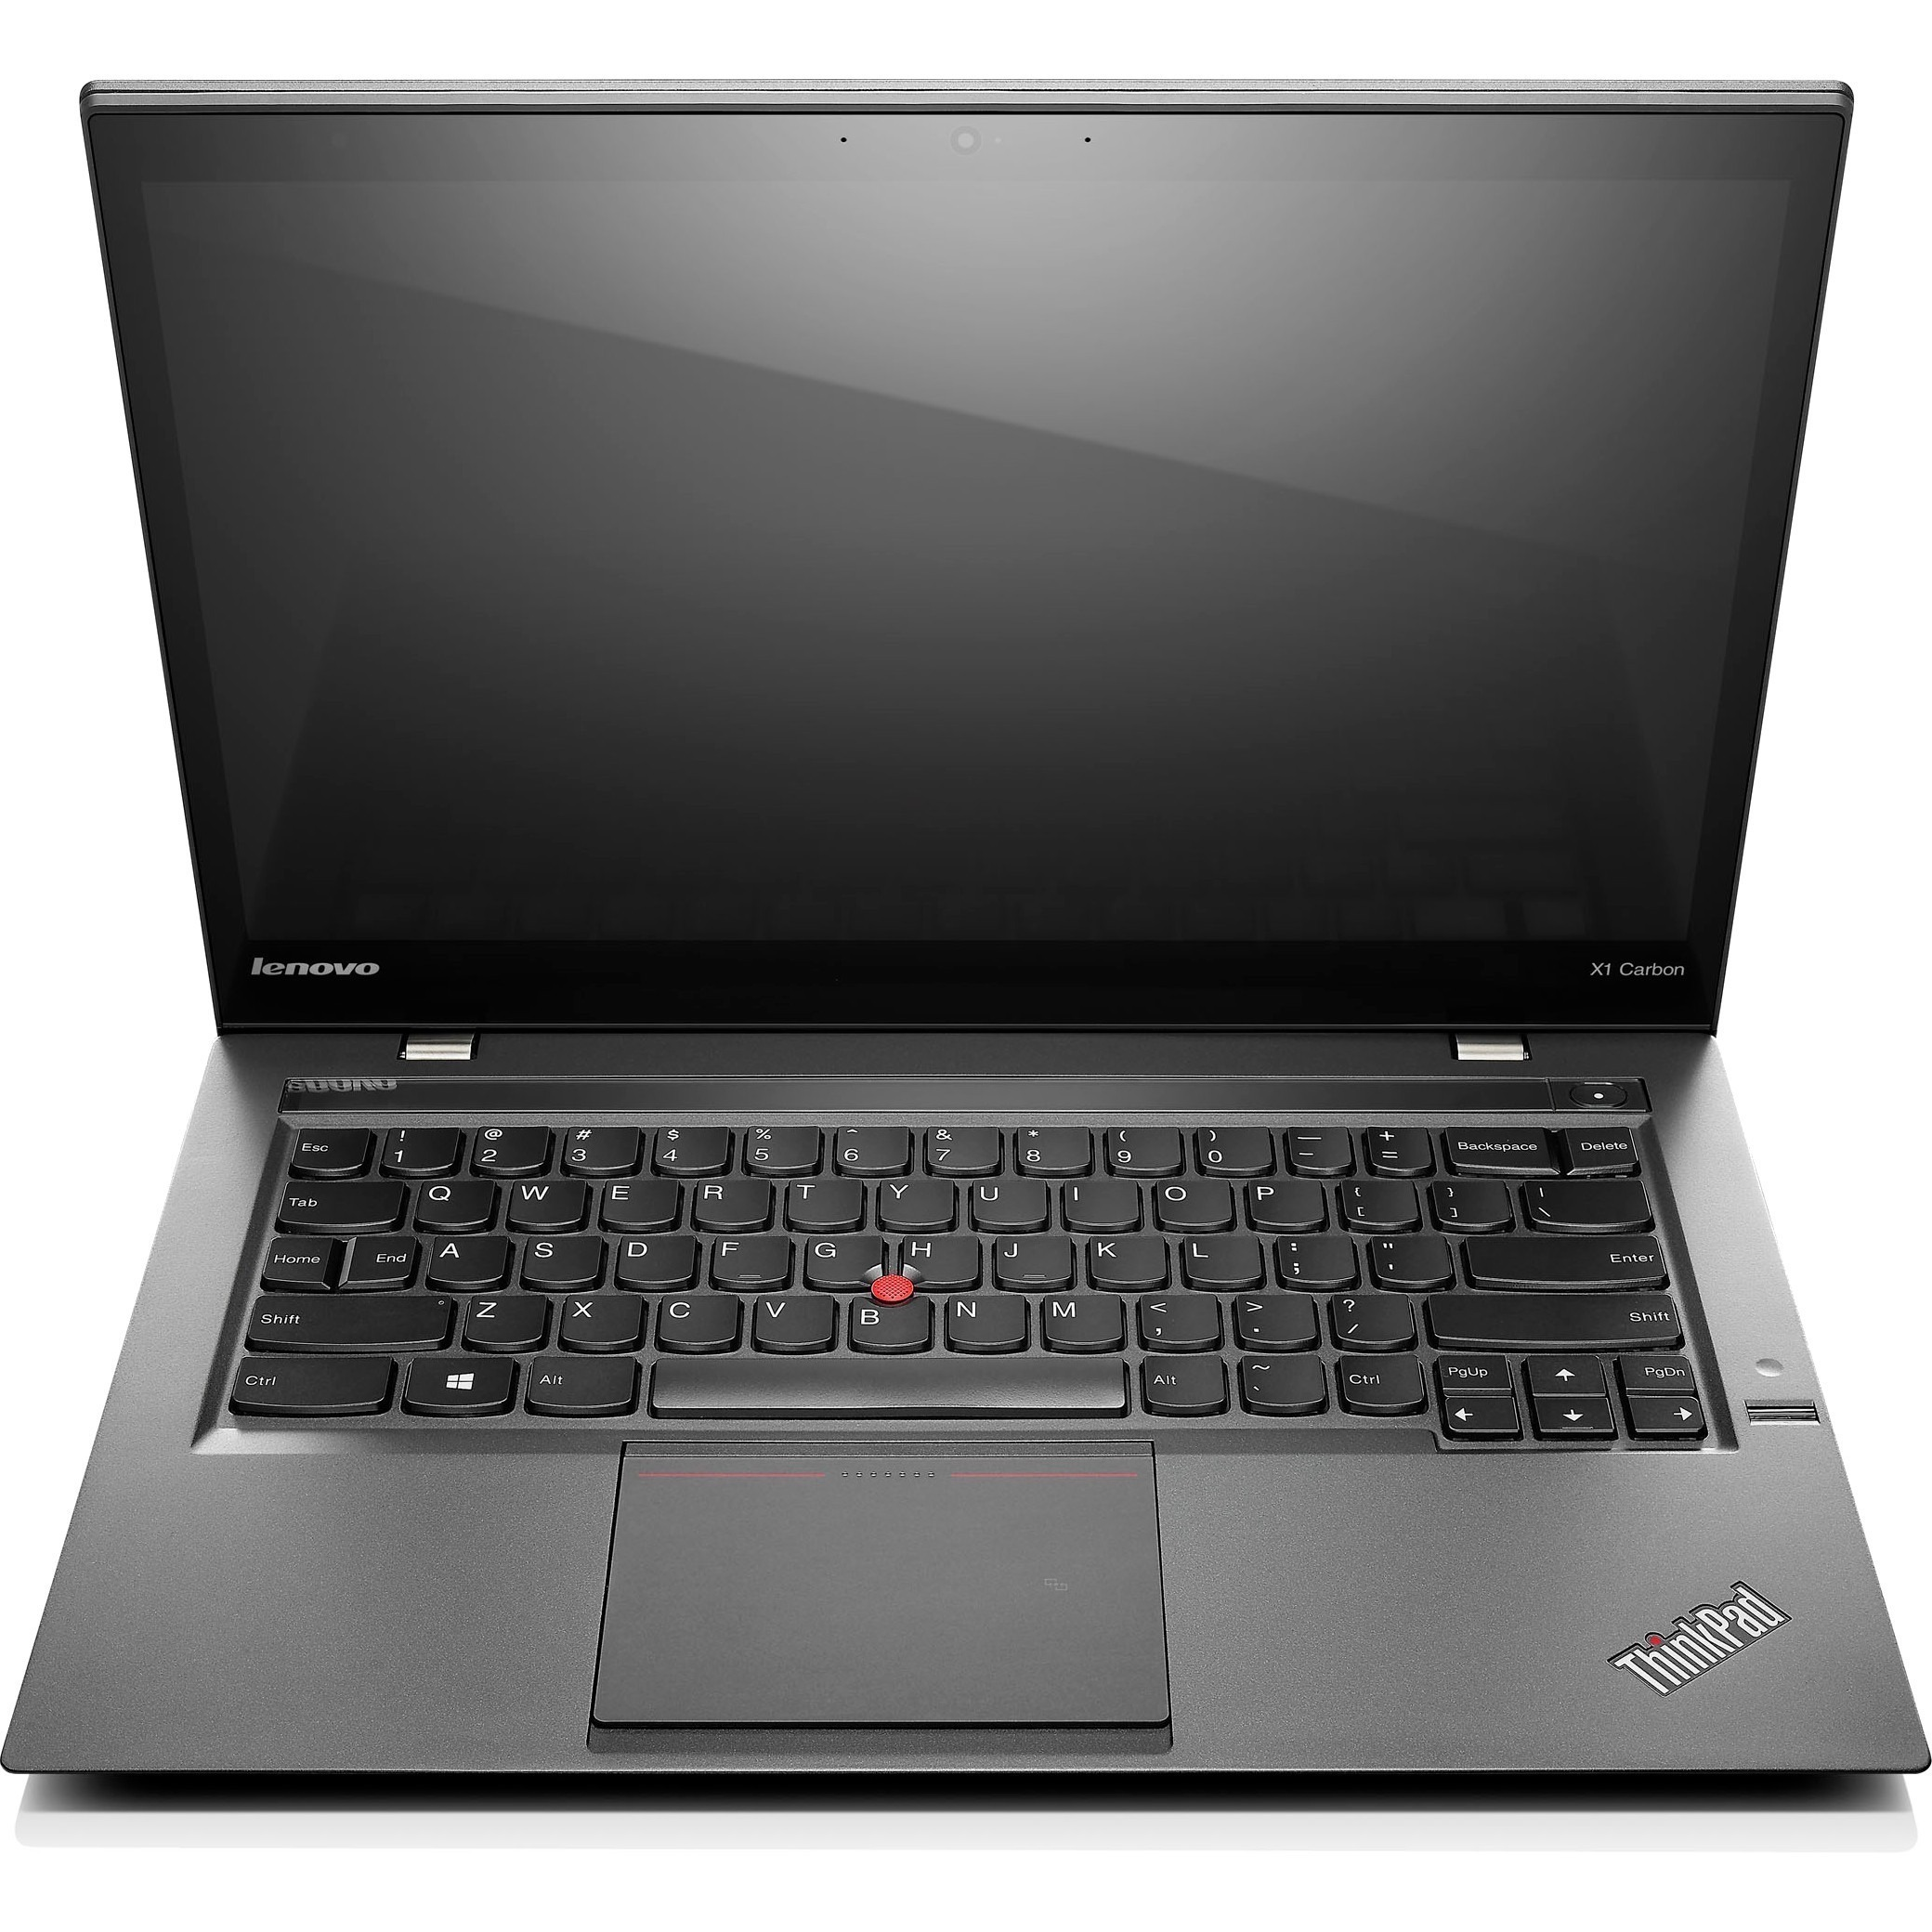 Lenovo ThinkPad X1 Carbon 5th Gen 20HRS08K00 35.6 cm 14inch LCD Ultrabook - Intel Core i7 7th Gen i7-7600U Dual-core 2 Core 2.80 GHz - 16 GB LPDDR3 - 256 GB SSD -